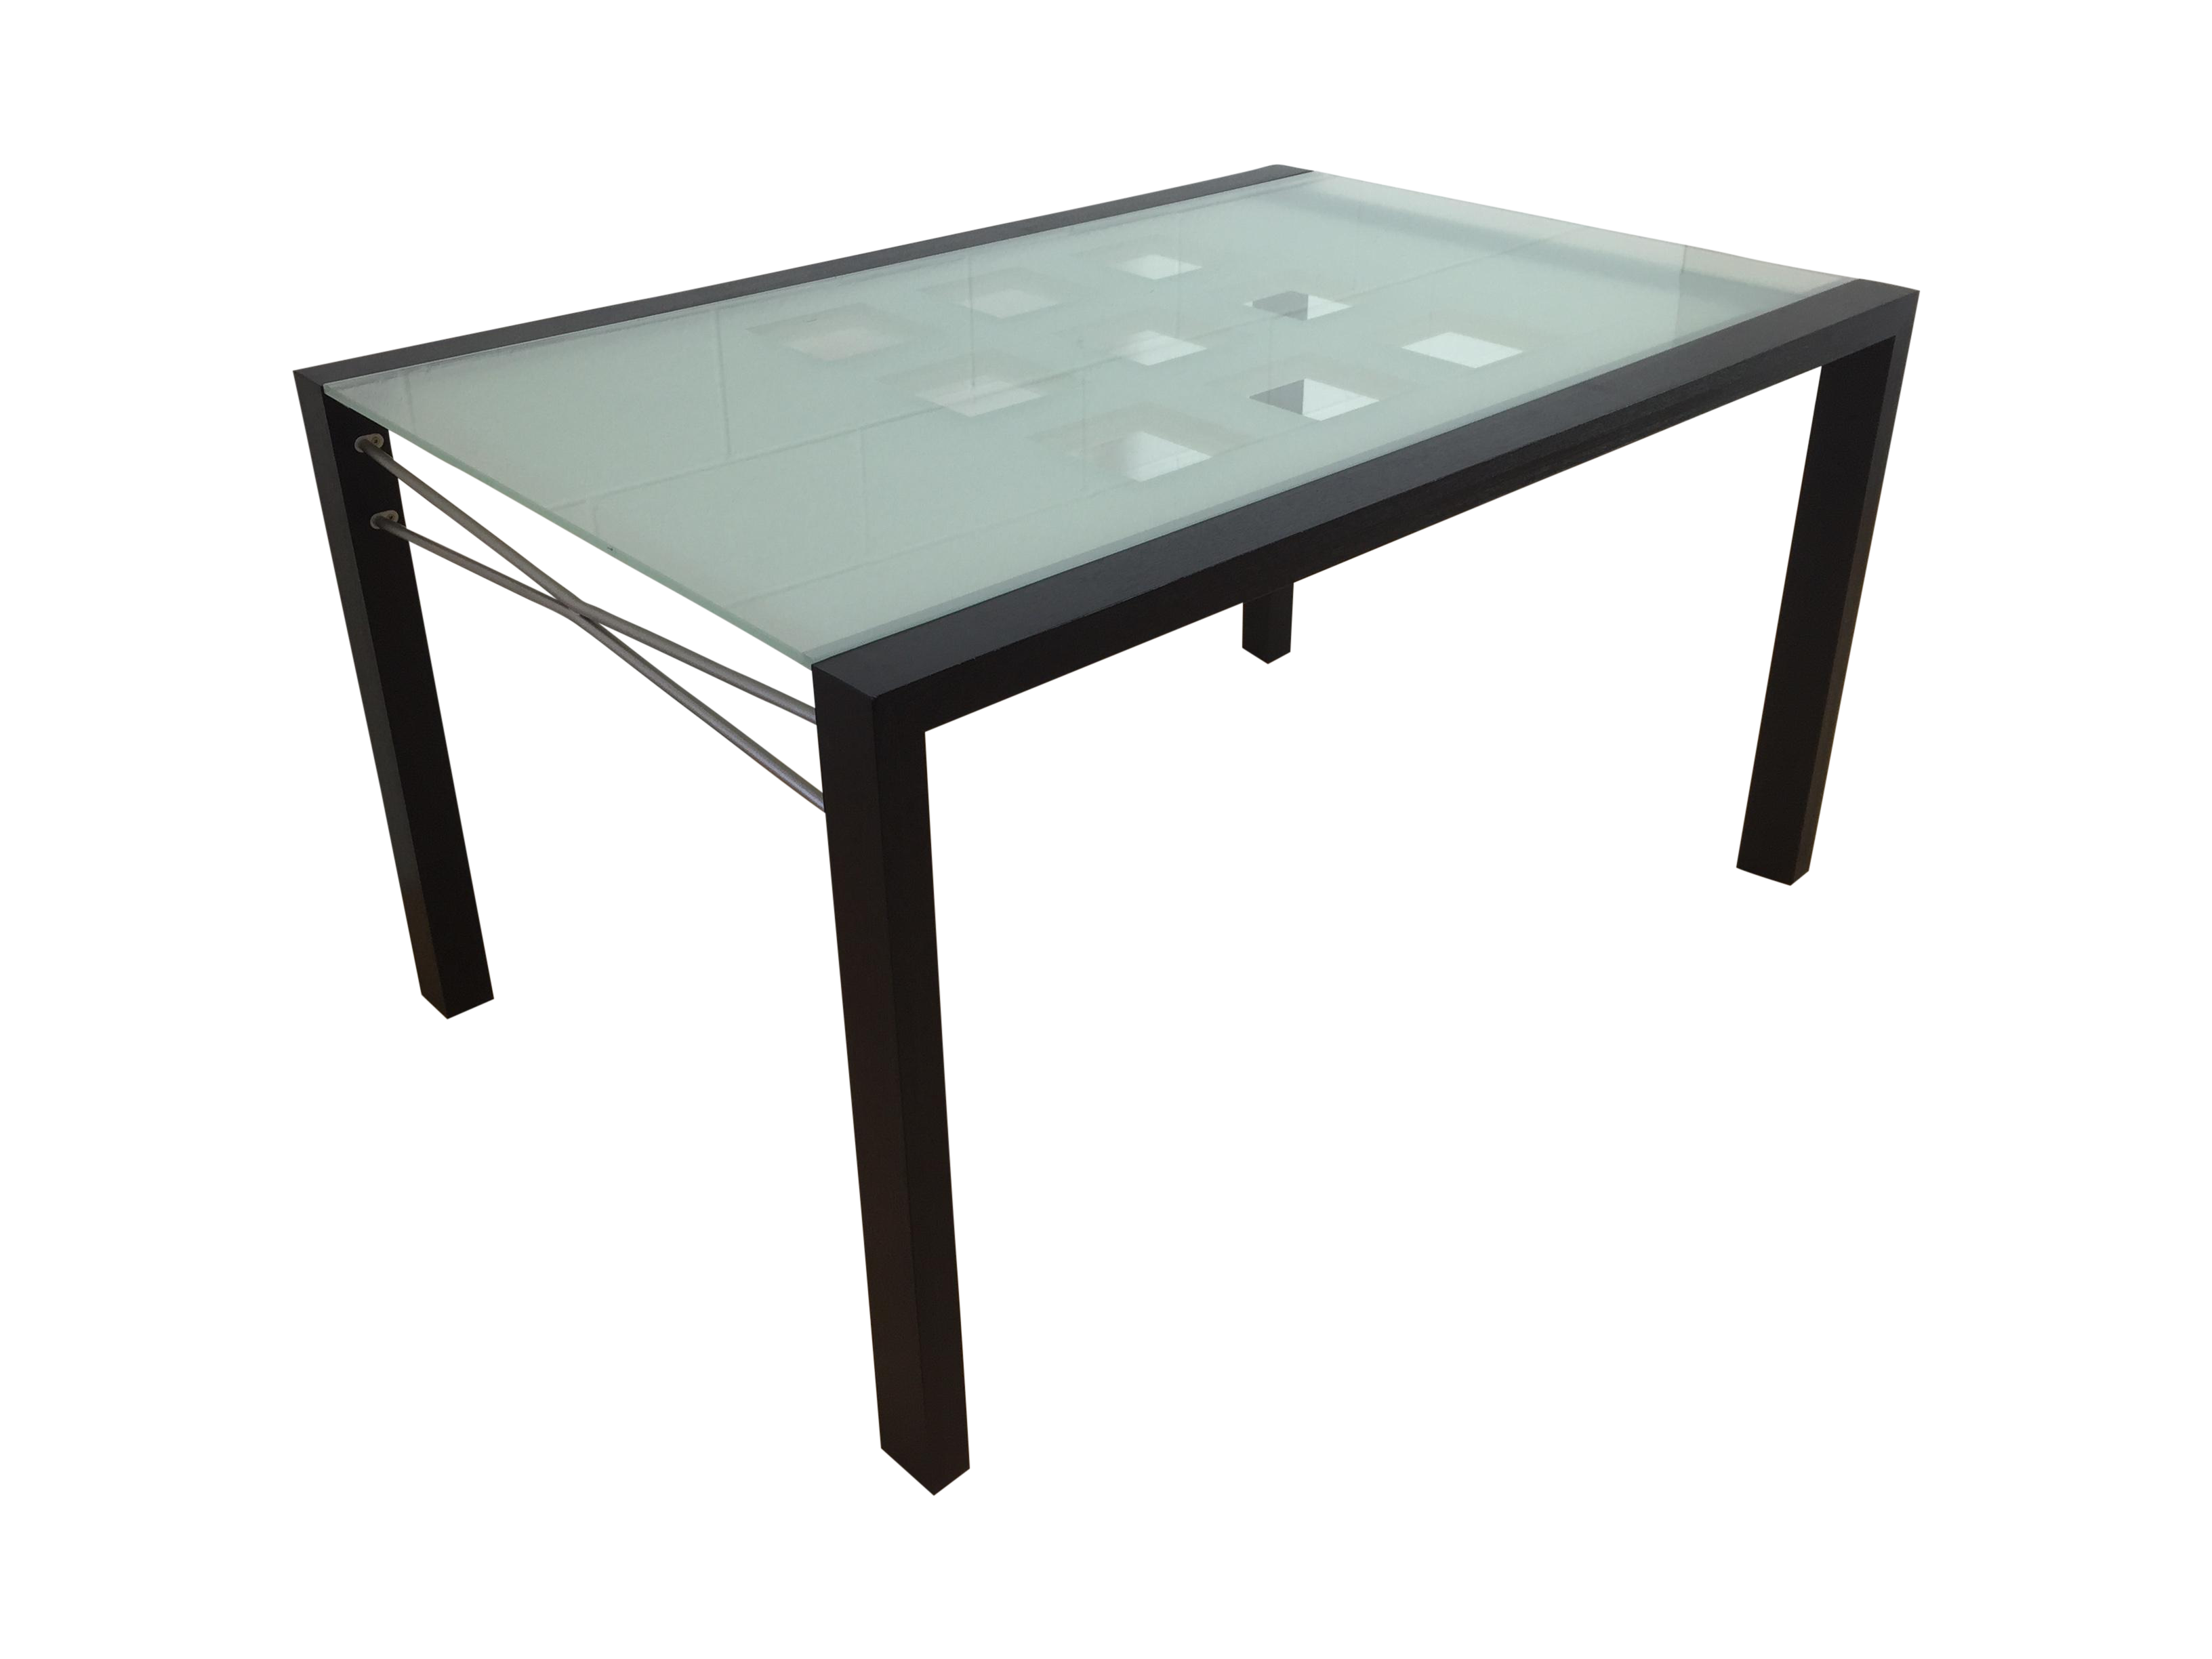 Table yoyo amazing yoyo convertible coffee table or desk Ligne roset yoyo